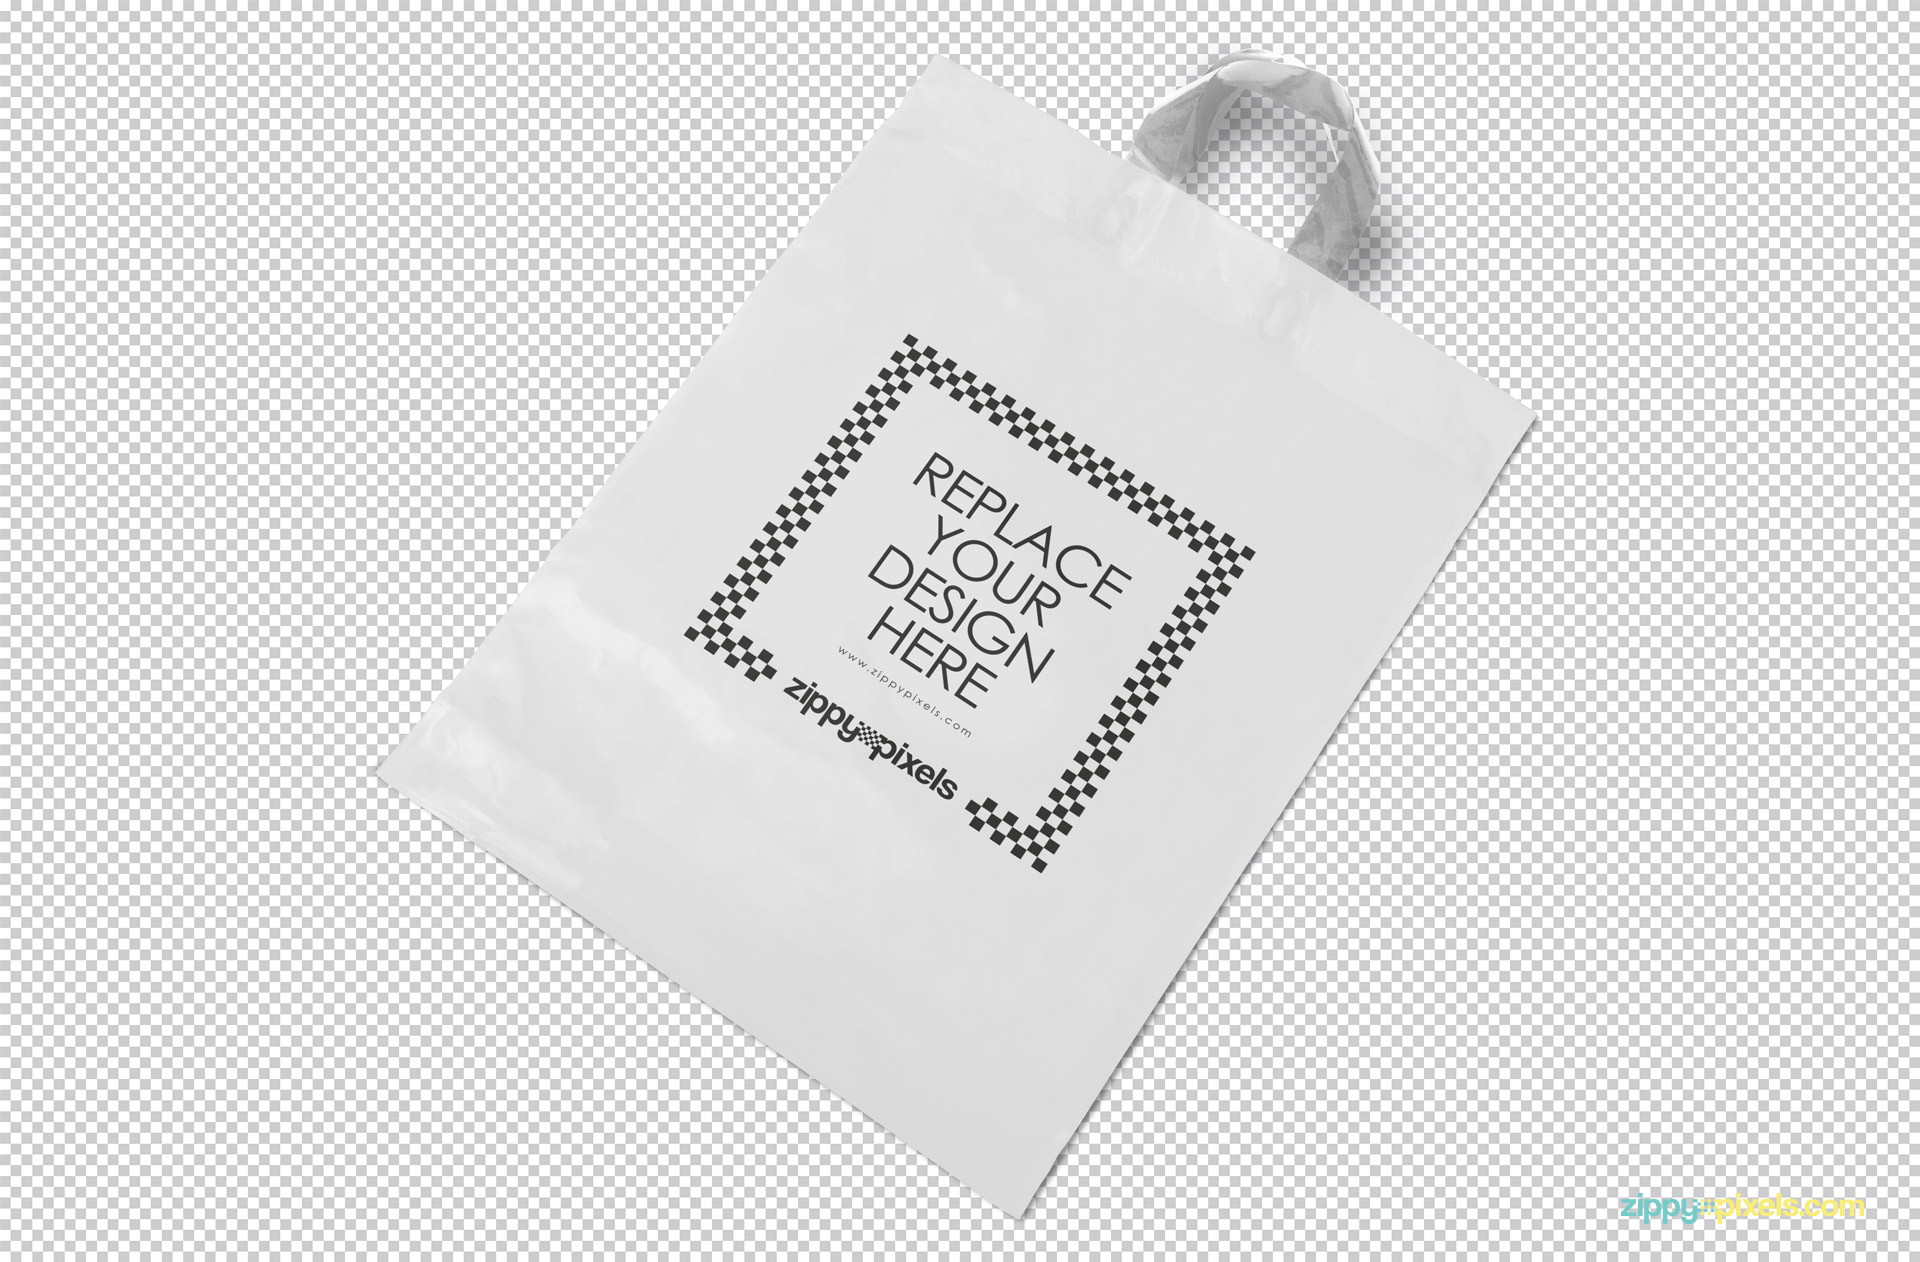 Your label design will stand out like a pro with this free mockup. Polythene Shopping Bag Mockup Free Psd Zippypixels